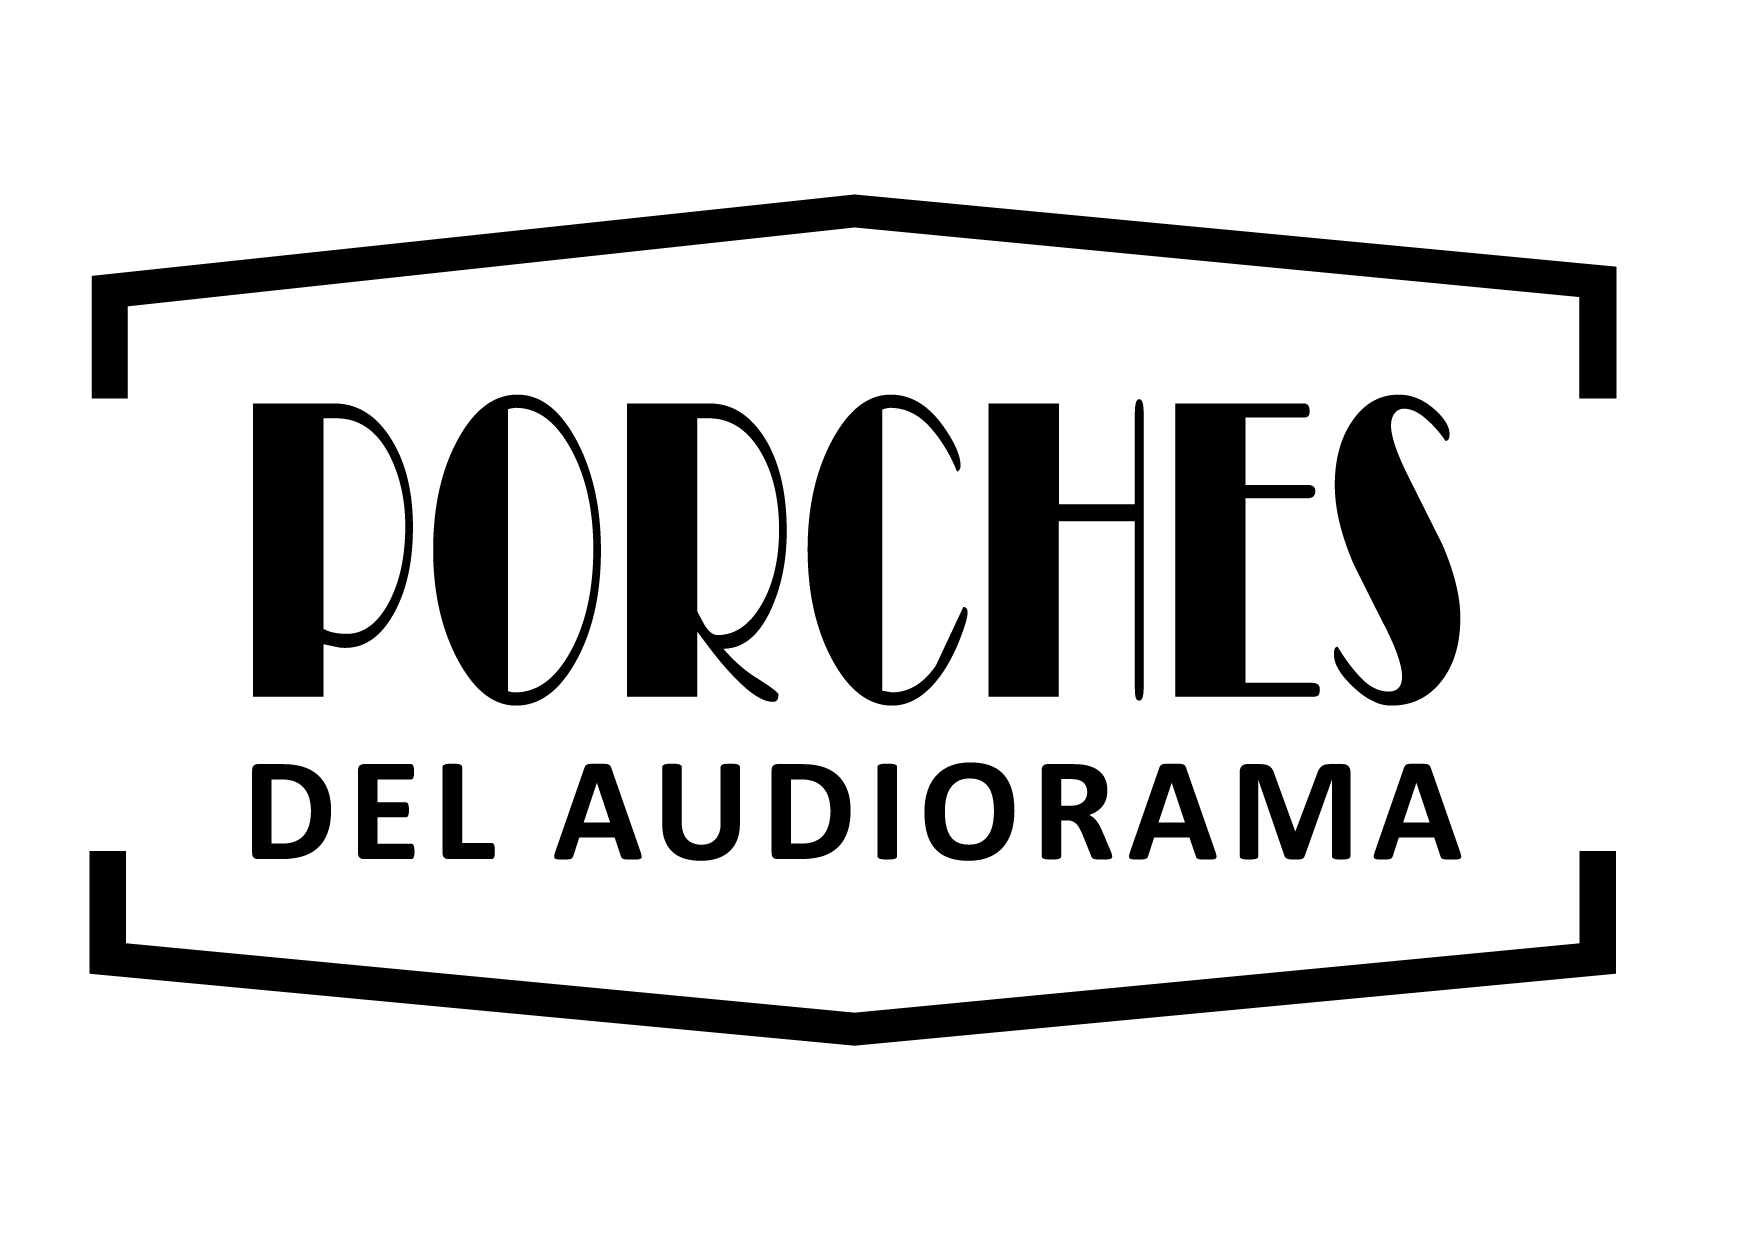 Los Porches del Audiorama